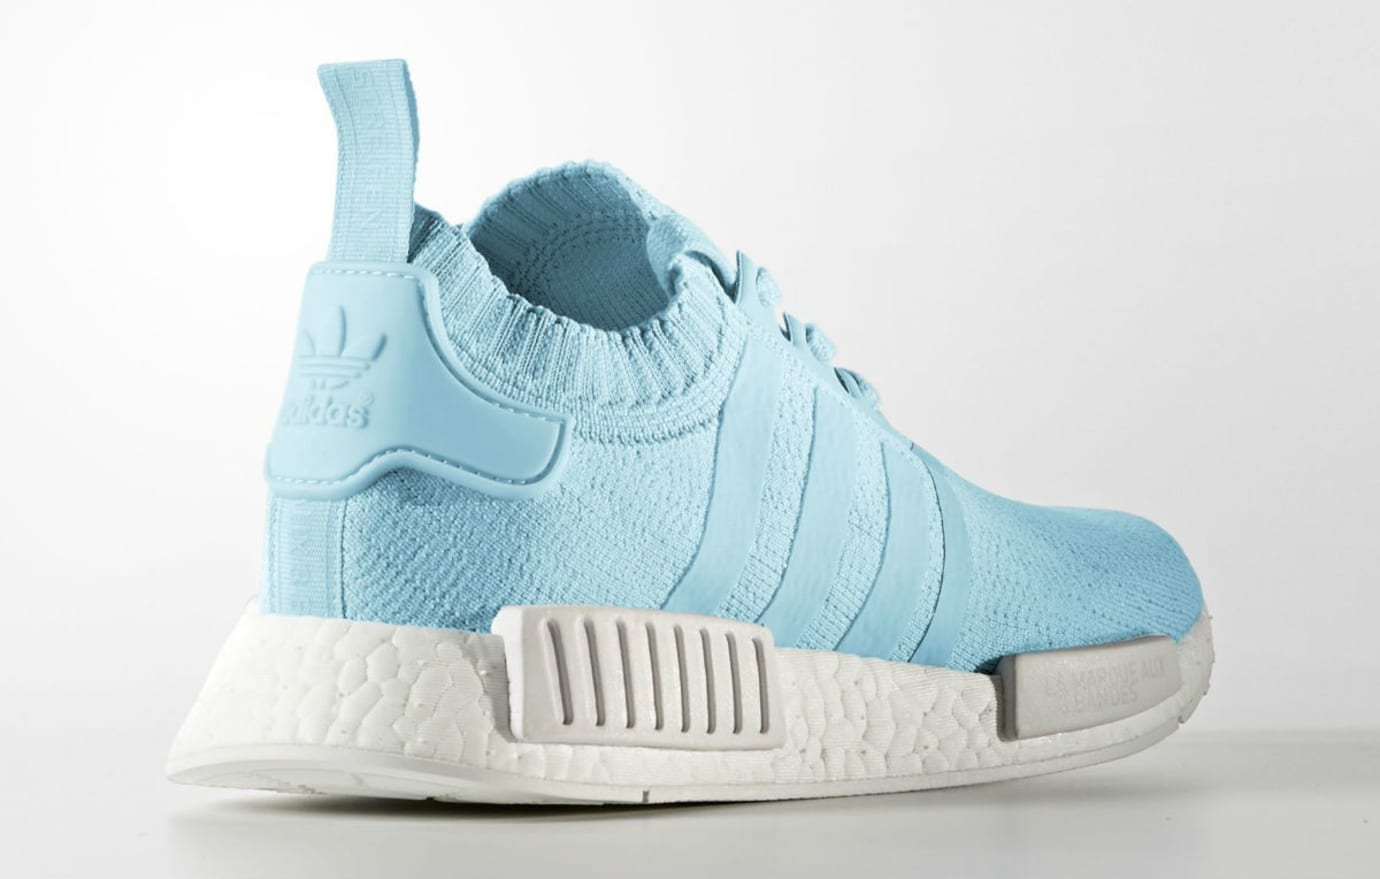 Adidas NMD R1 Primeknit Ice Blue Release Date Lateral BY8763